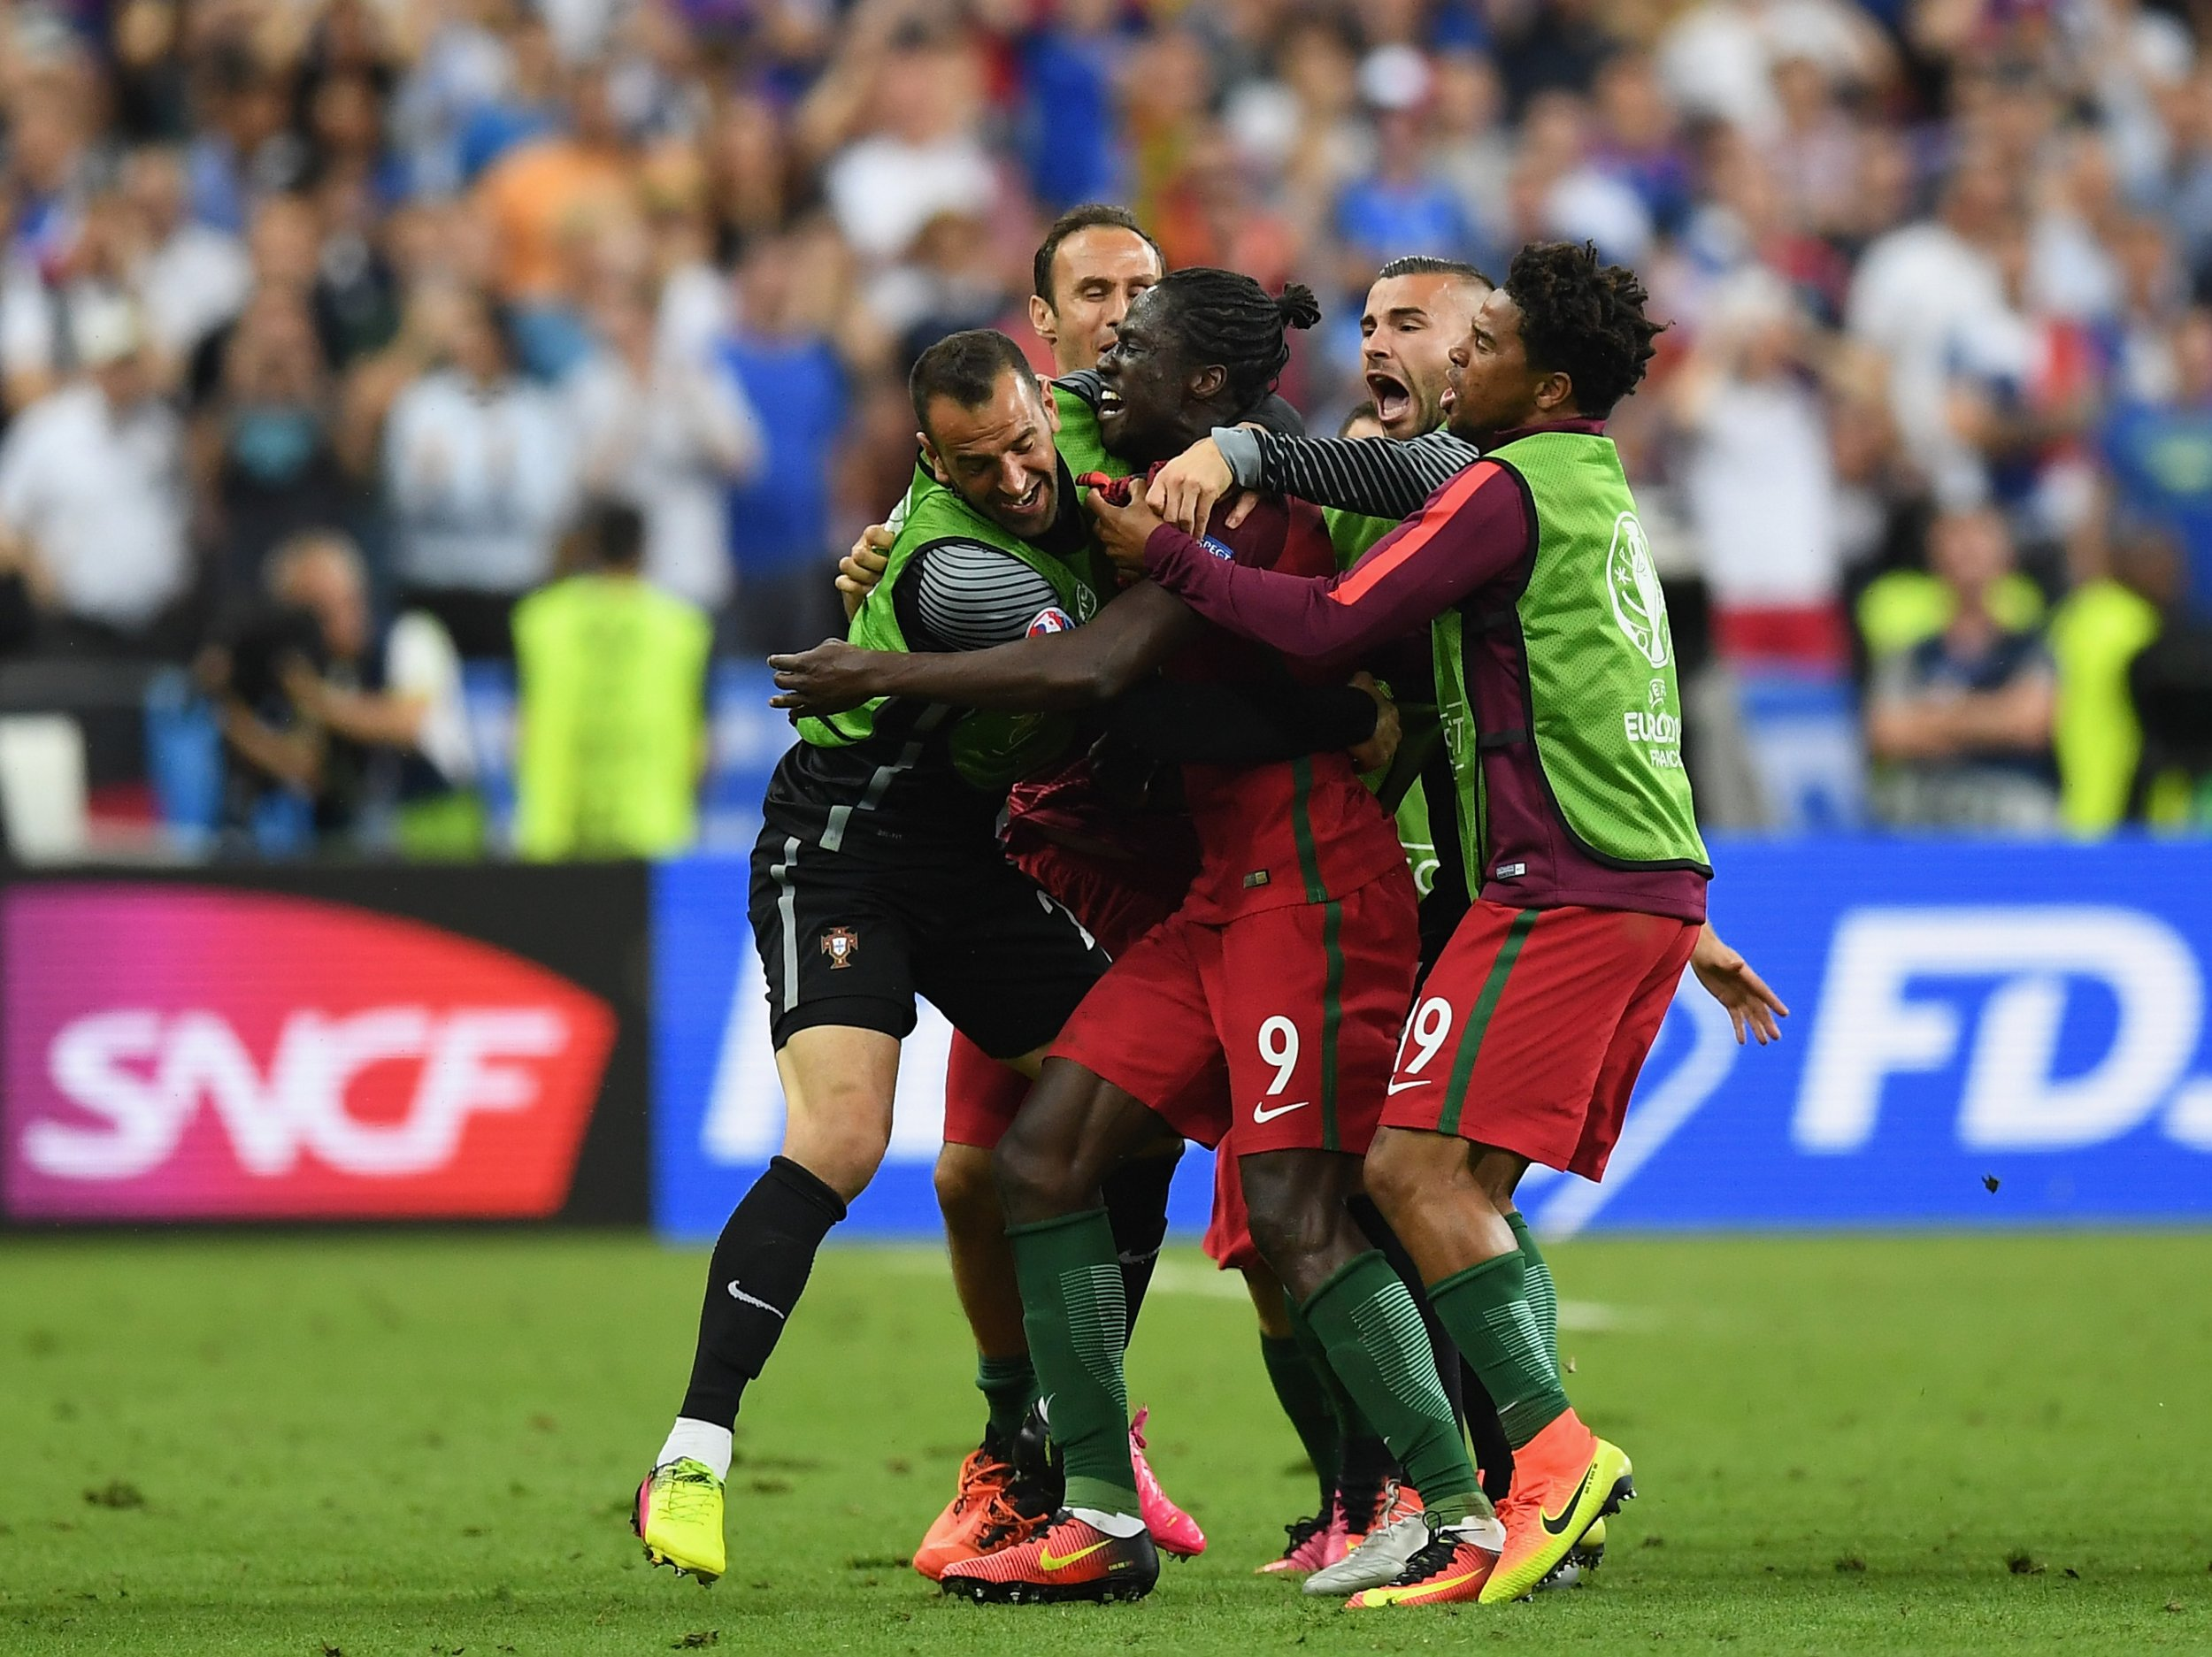 Portugal players celebrate the winning goal of Eder, center.